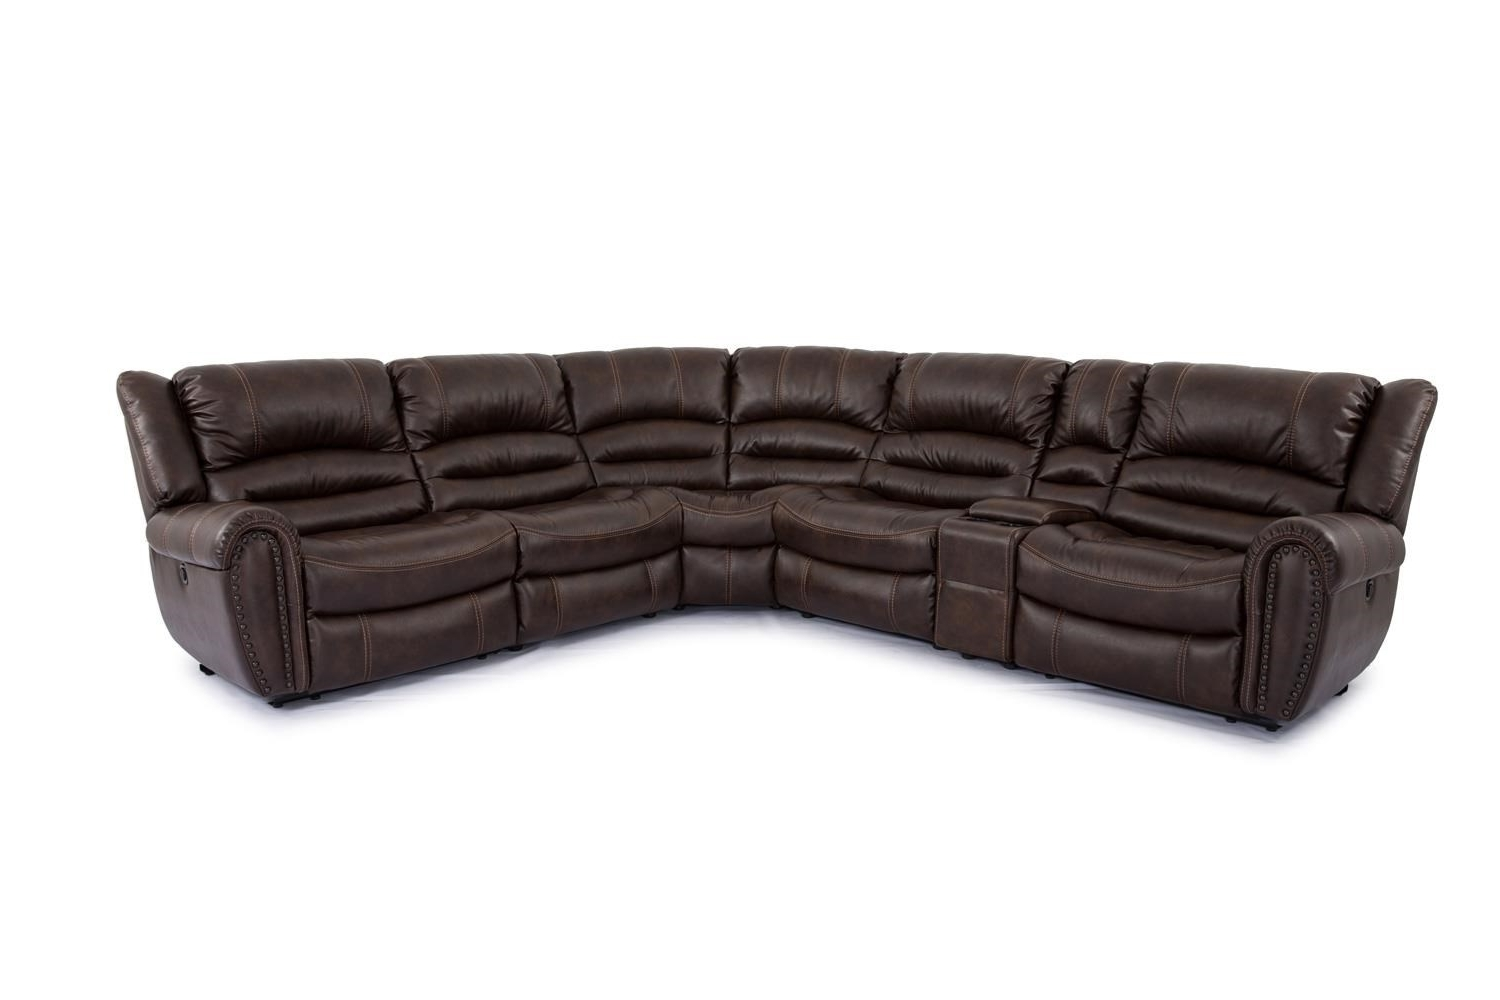 Boulevard Home For Famous 6 Piece Leather Sectional Sofas (View 12 of 20)